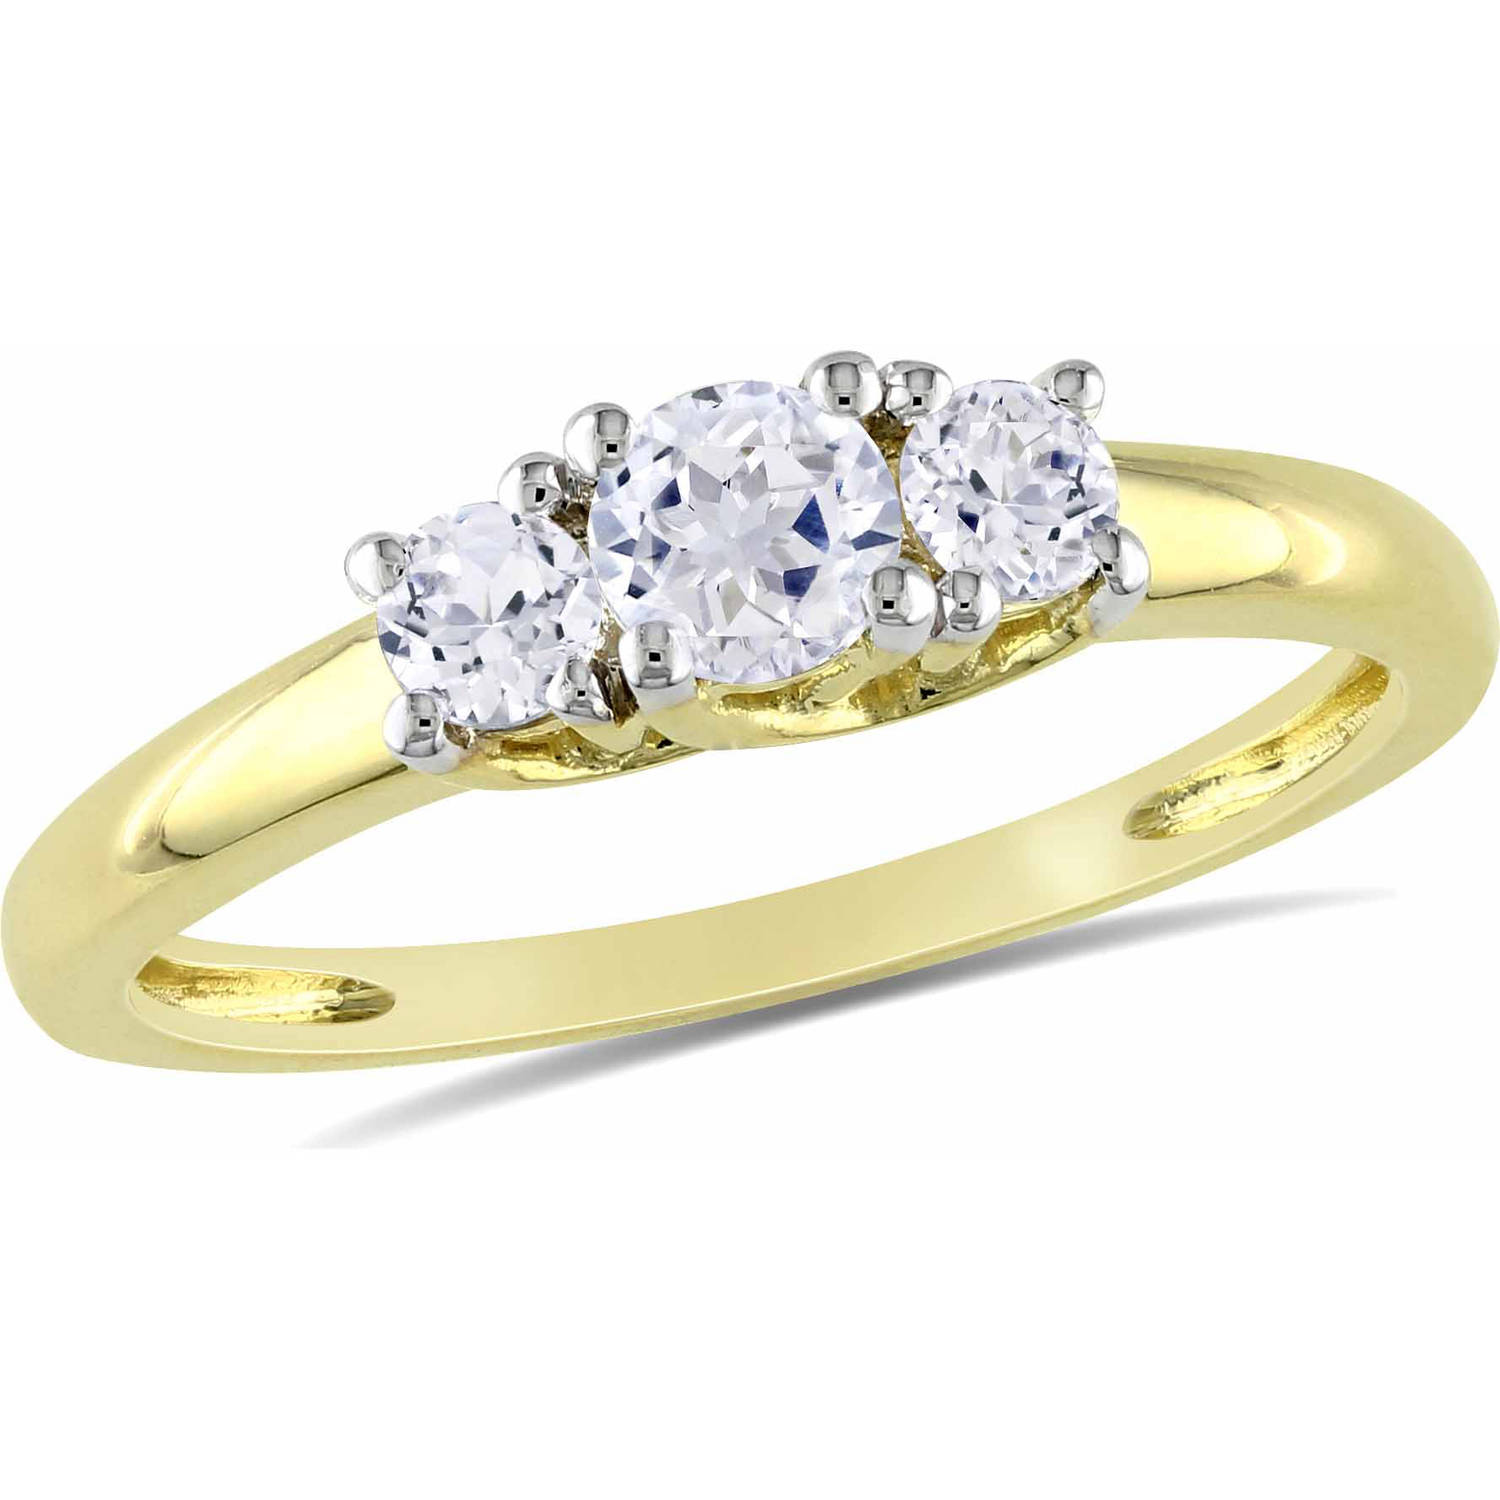 Miabella 5 8 Carat T.G.W. Created White Sapphire 10kt Yellow Gold Three Stone Engagement Ring by Delmar Manufacturing LLC